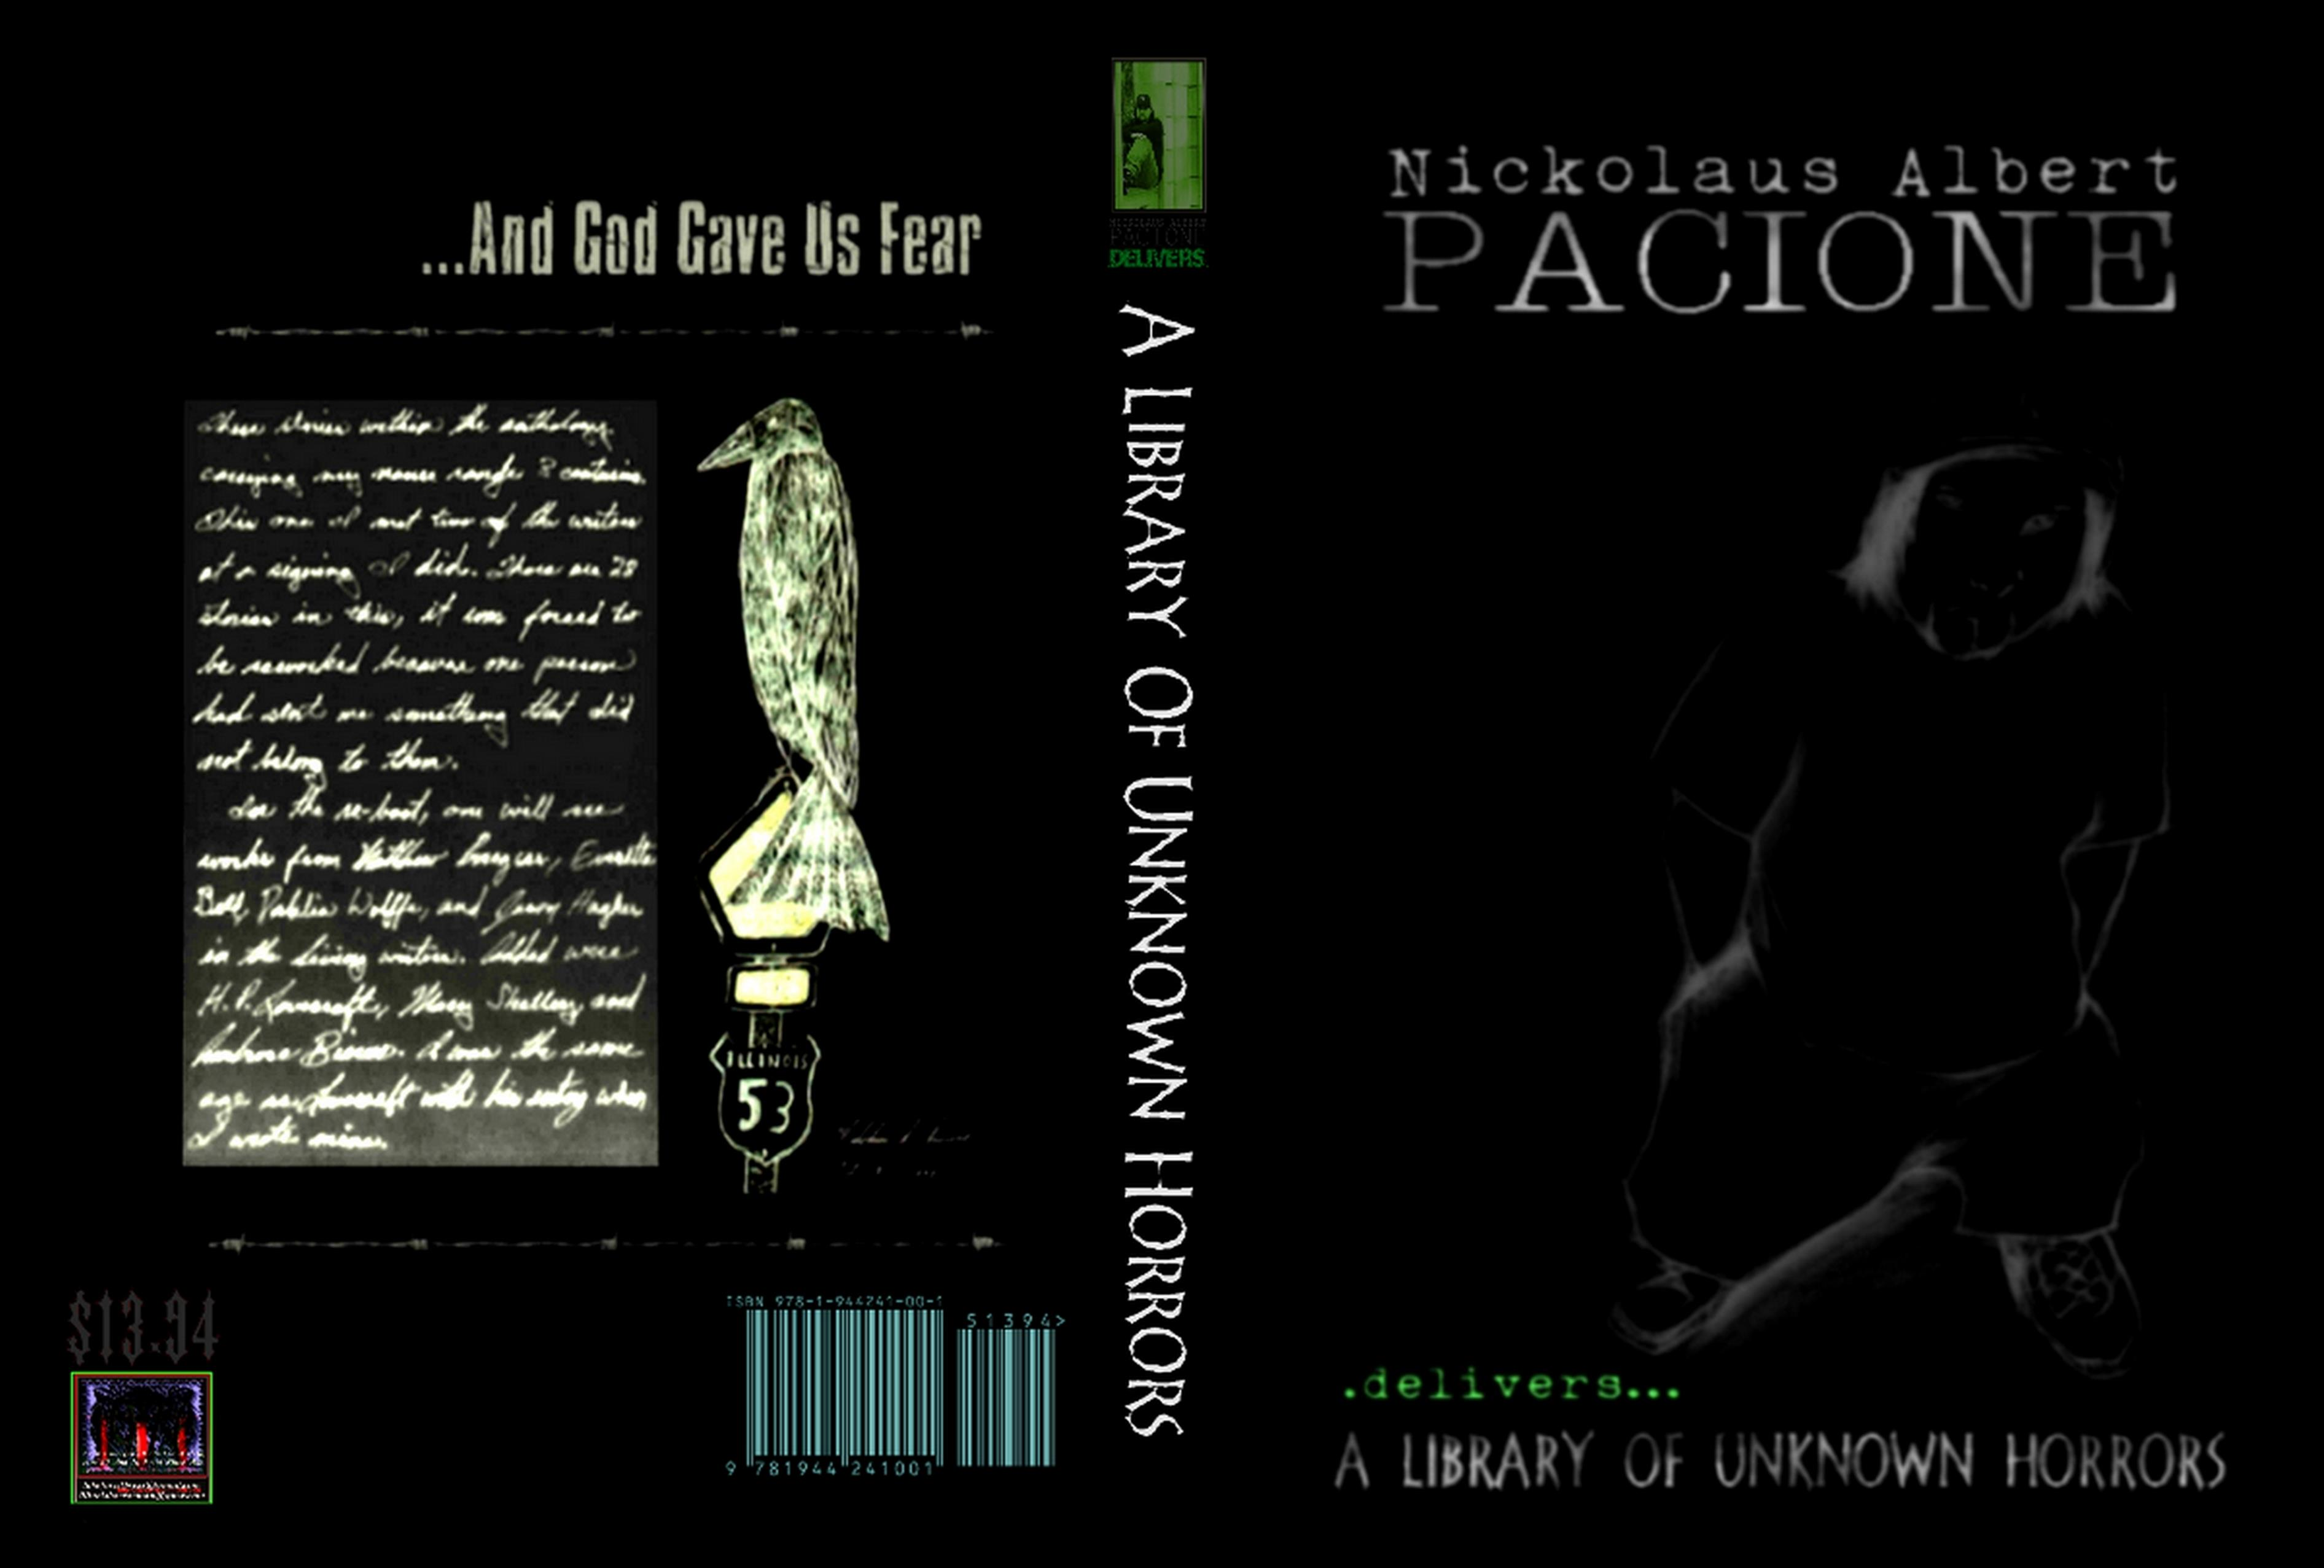 Nickolaus Albert Pacione Delivers: A Library Of Unknown Horrors cover image